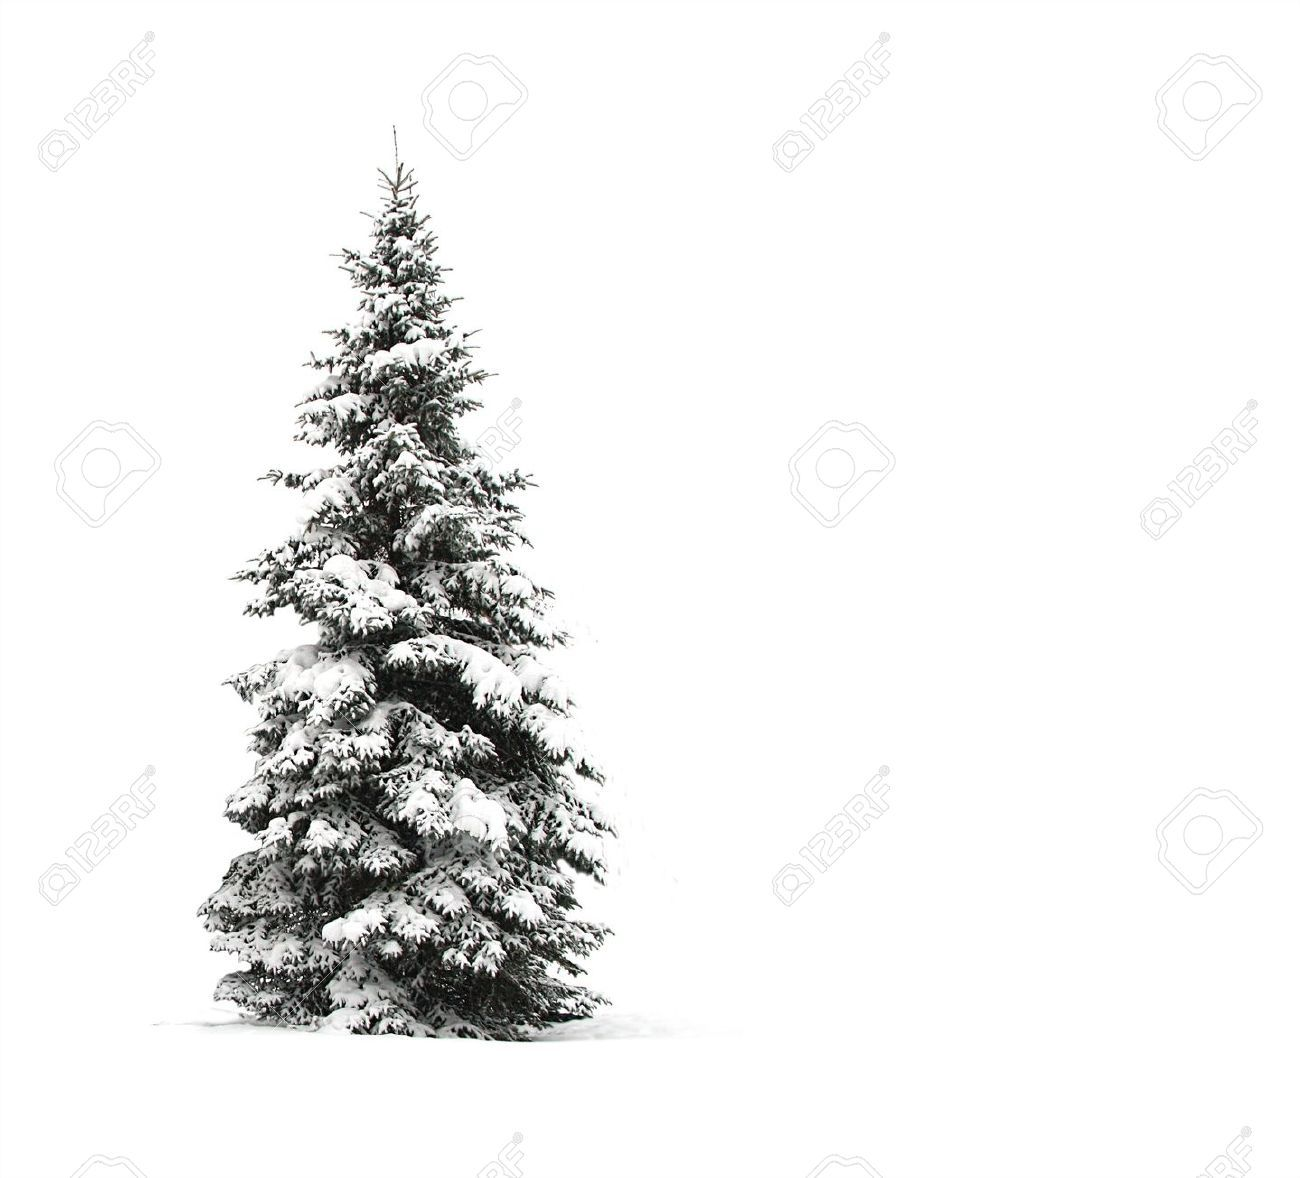 Image Result For Pinetree With Snow Art Inspiration Botanical